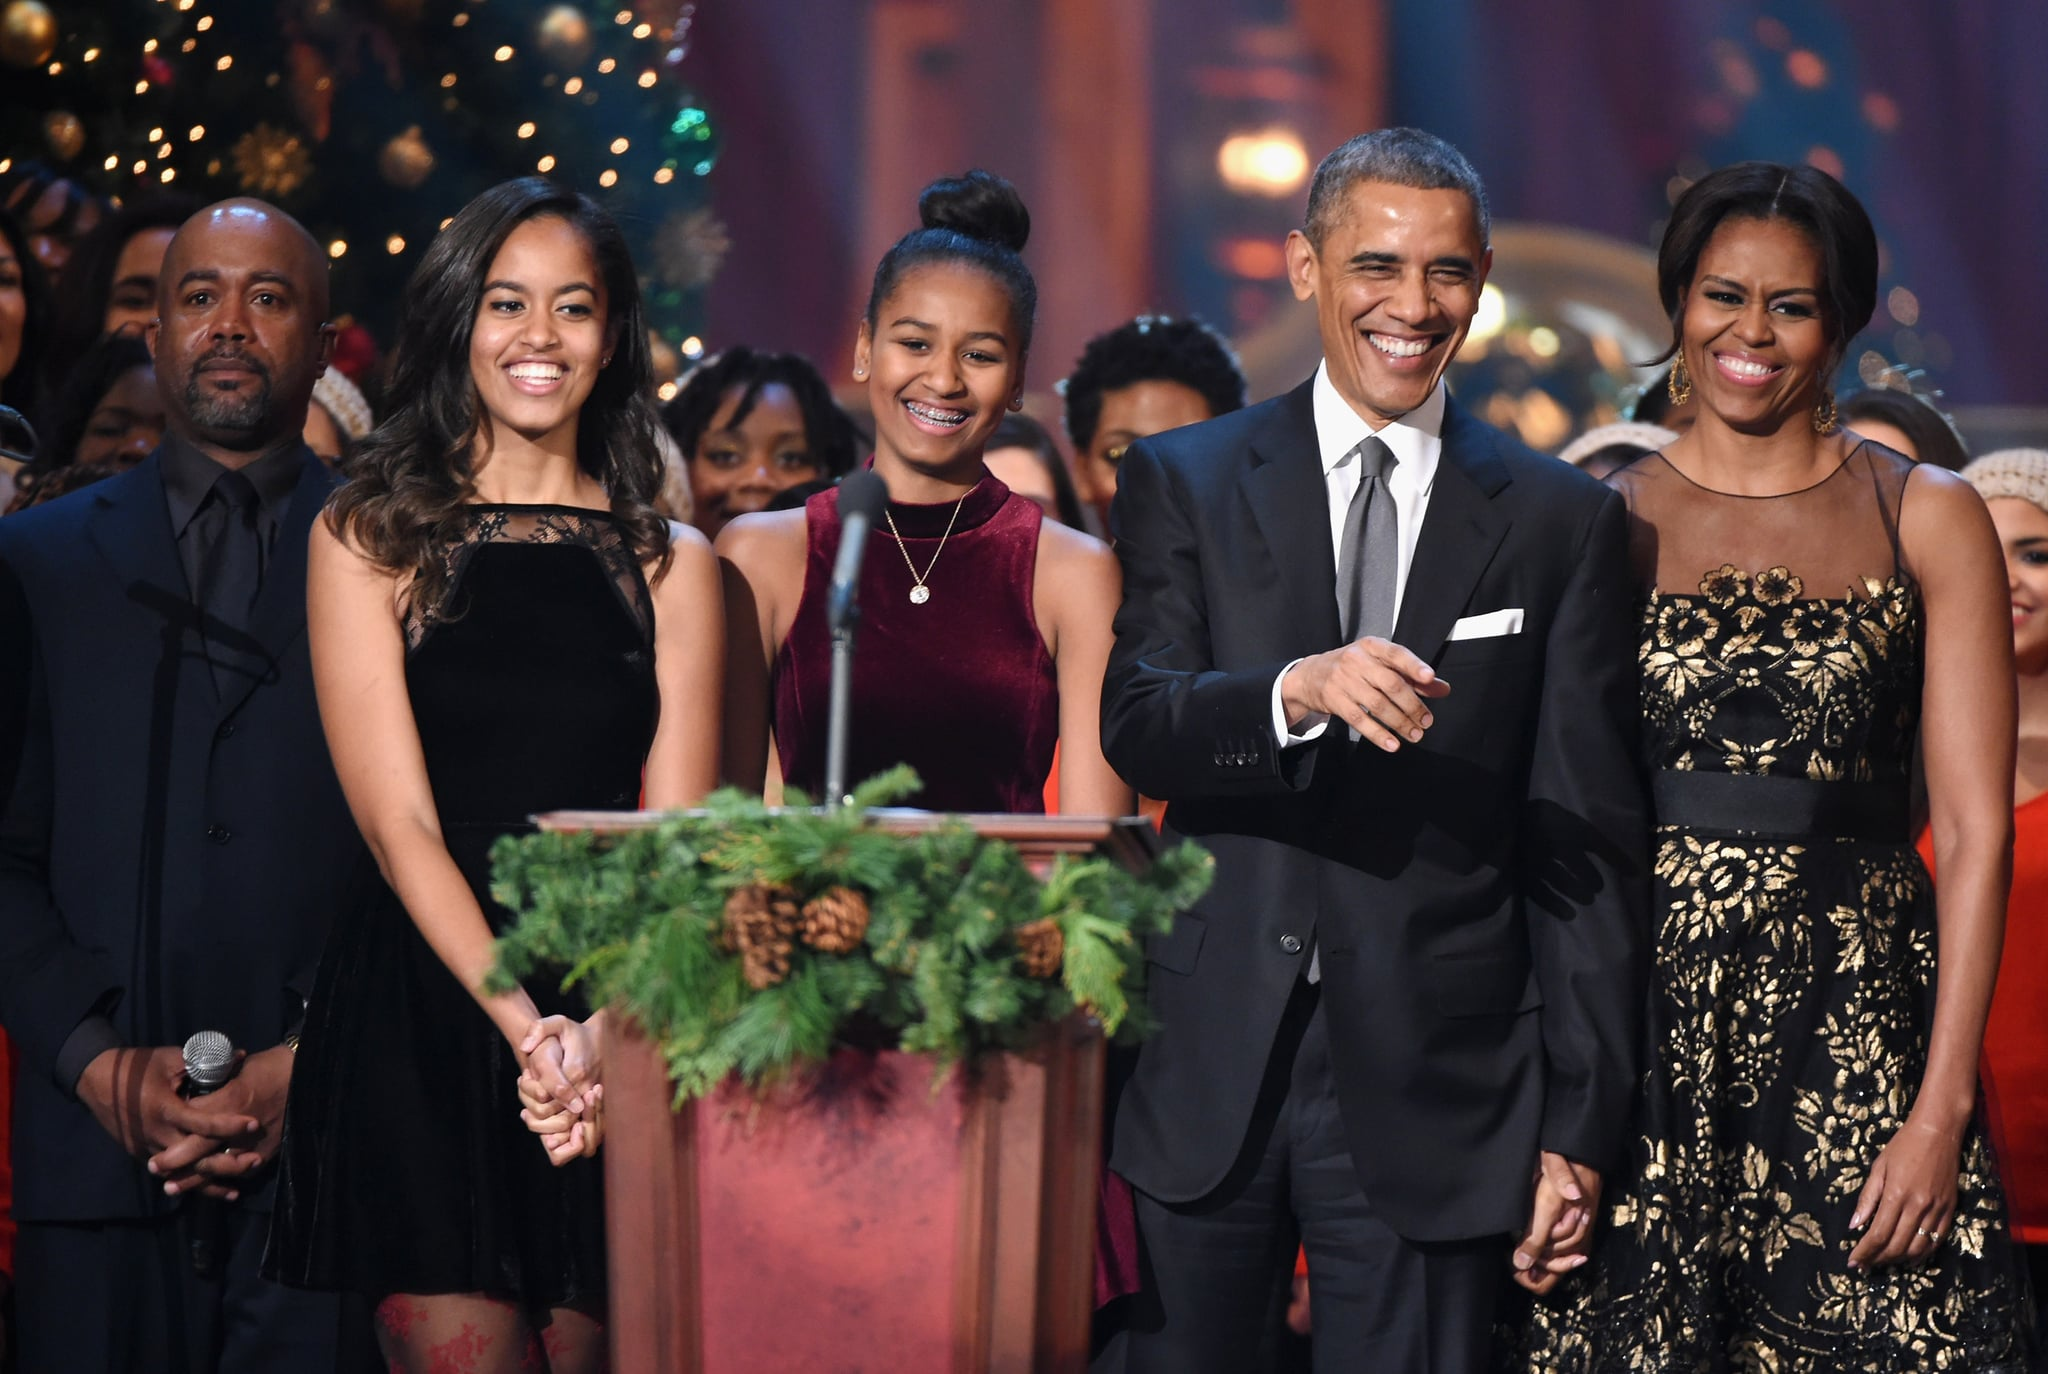 WASHINGTON, DC - DECEMBER 14:  (L-R) Darius Rucker, Malia Obama, Sasha Obama, U.S. President Barack Obama, and First Lady Michelle Obama speak onstage at TNT Christmas in Washington 2014 at the National Building Museum on December 14, 2014 in Washington, DC.  25248_001_0605.JPG  (Photo by Theo Wargo/WireImage)